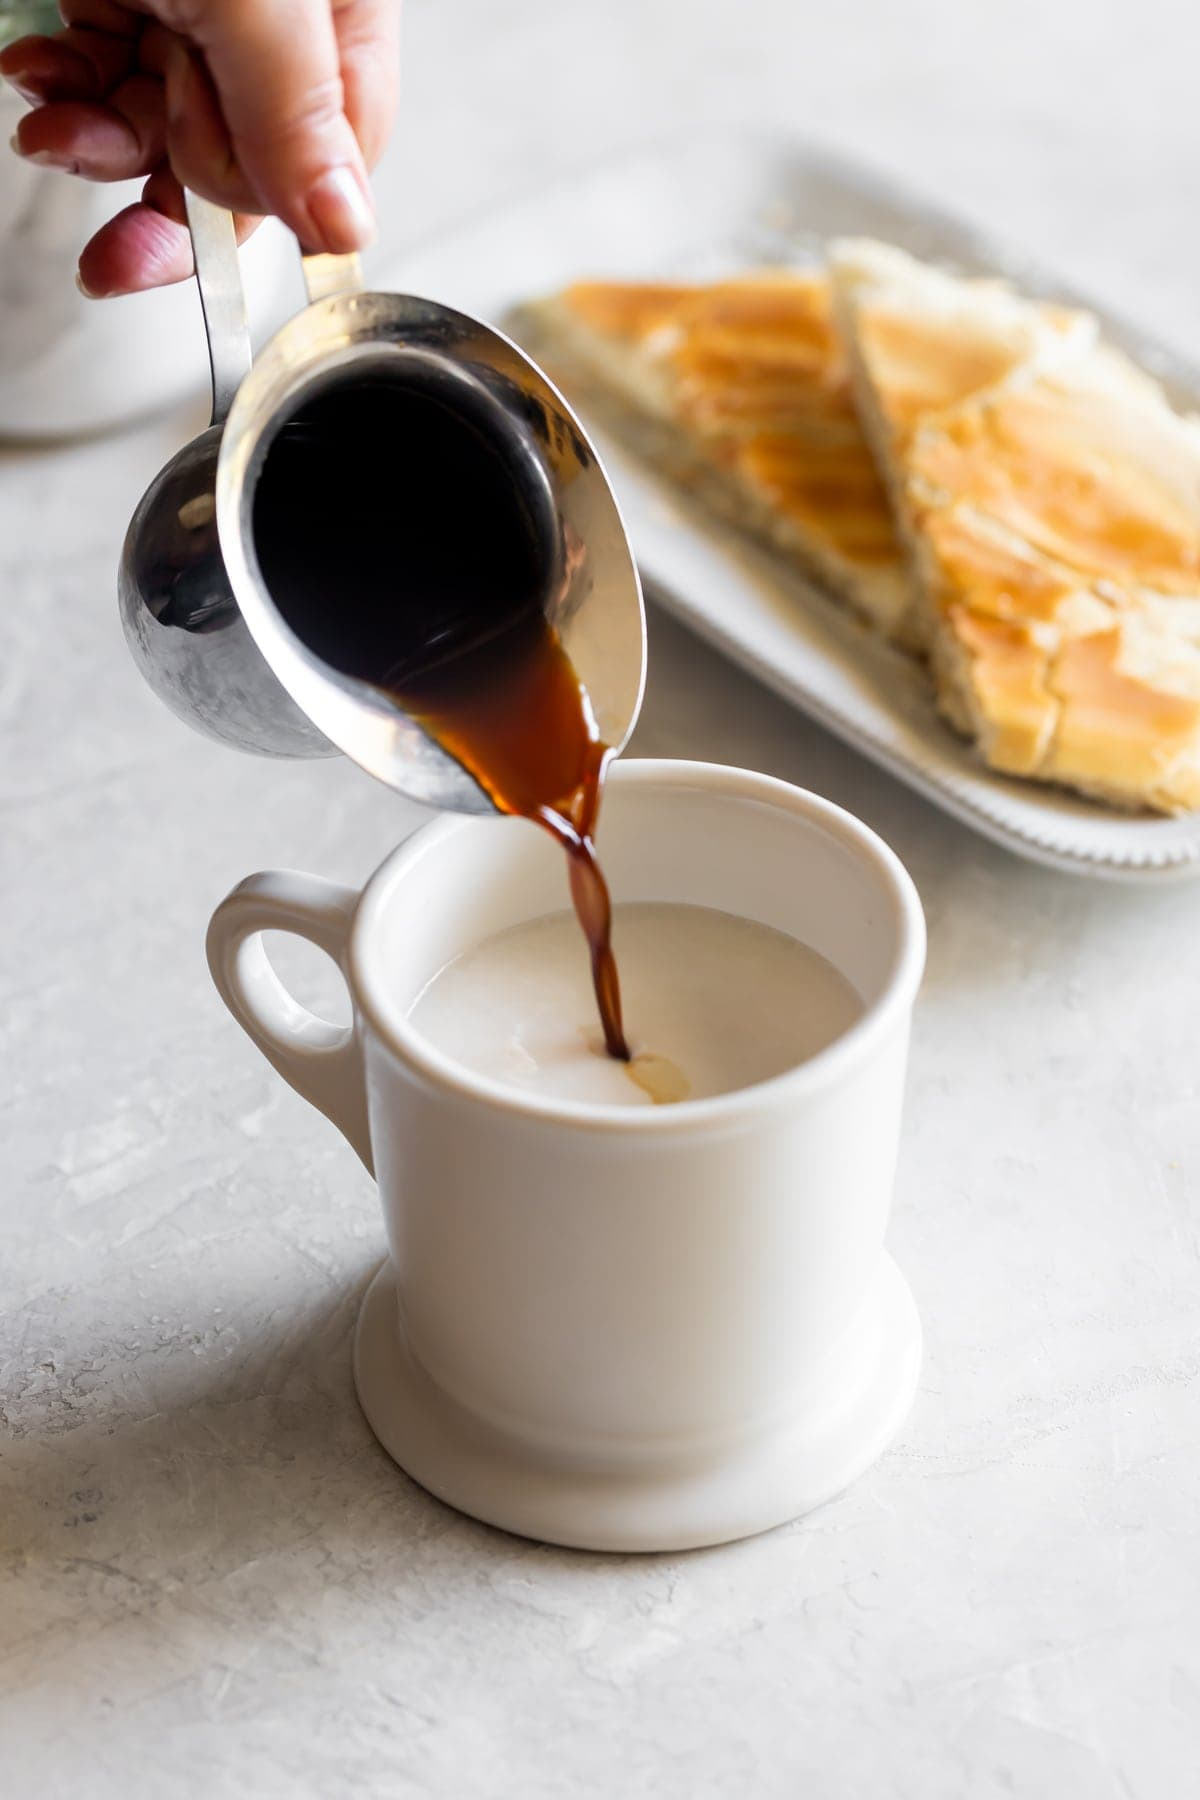 cuban coffee being poured into milk